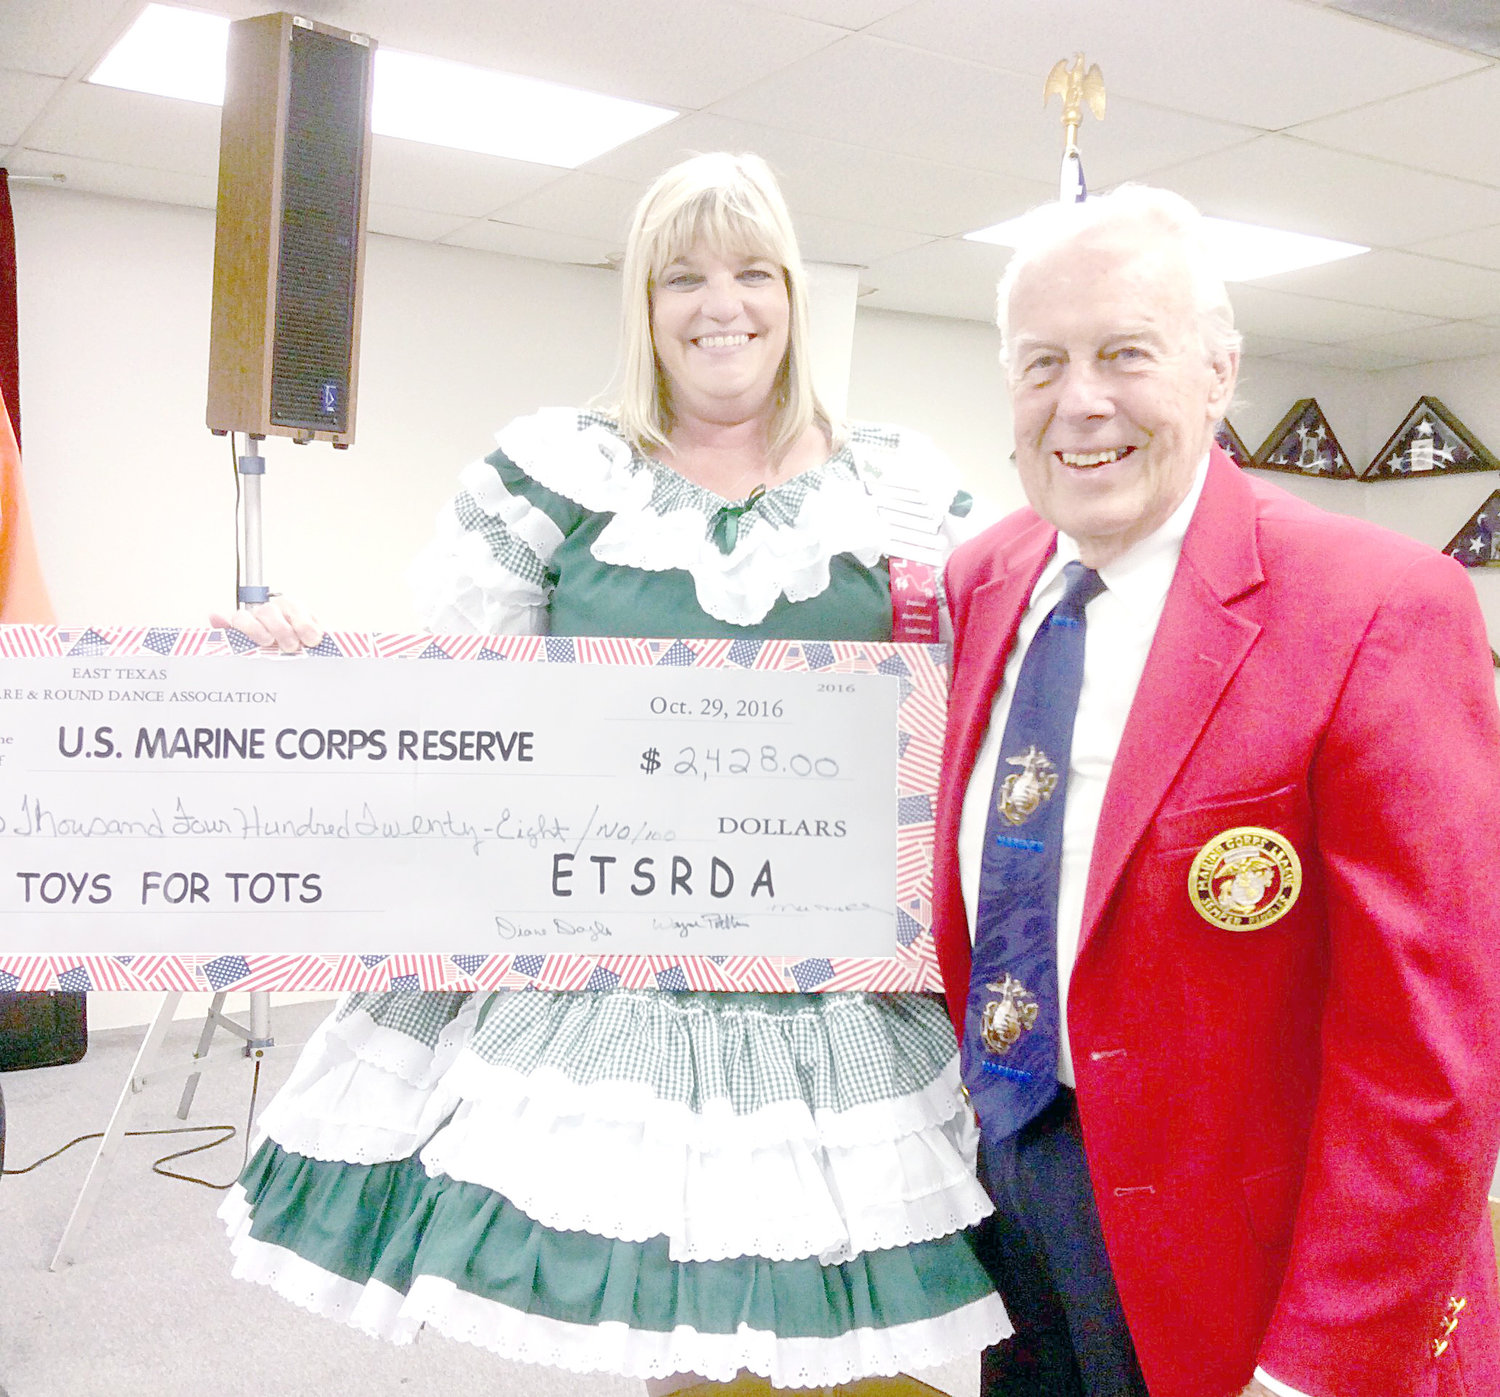 From left, Diane Doyle, president of East Texas Square & Round Dance Association, Inc. presents Larry Beason, chairman of the Marine Corp Reserve's Toys for Tots program, with a check for $2,428 along with four boxes of toys at the Square Dance Association's annual Toys for Tots Dance.  Beason said the donation would go towards making this a happy Christmas for a lot of East Texas children.